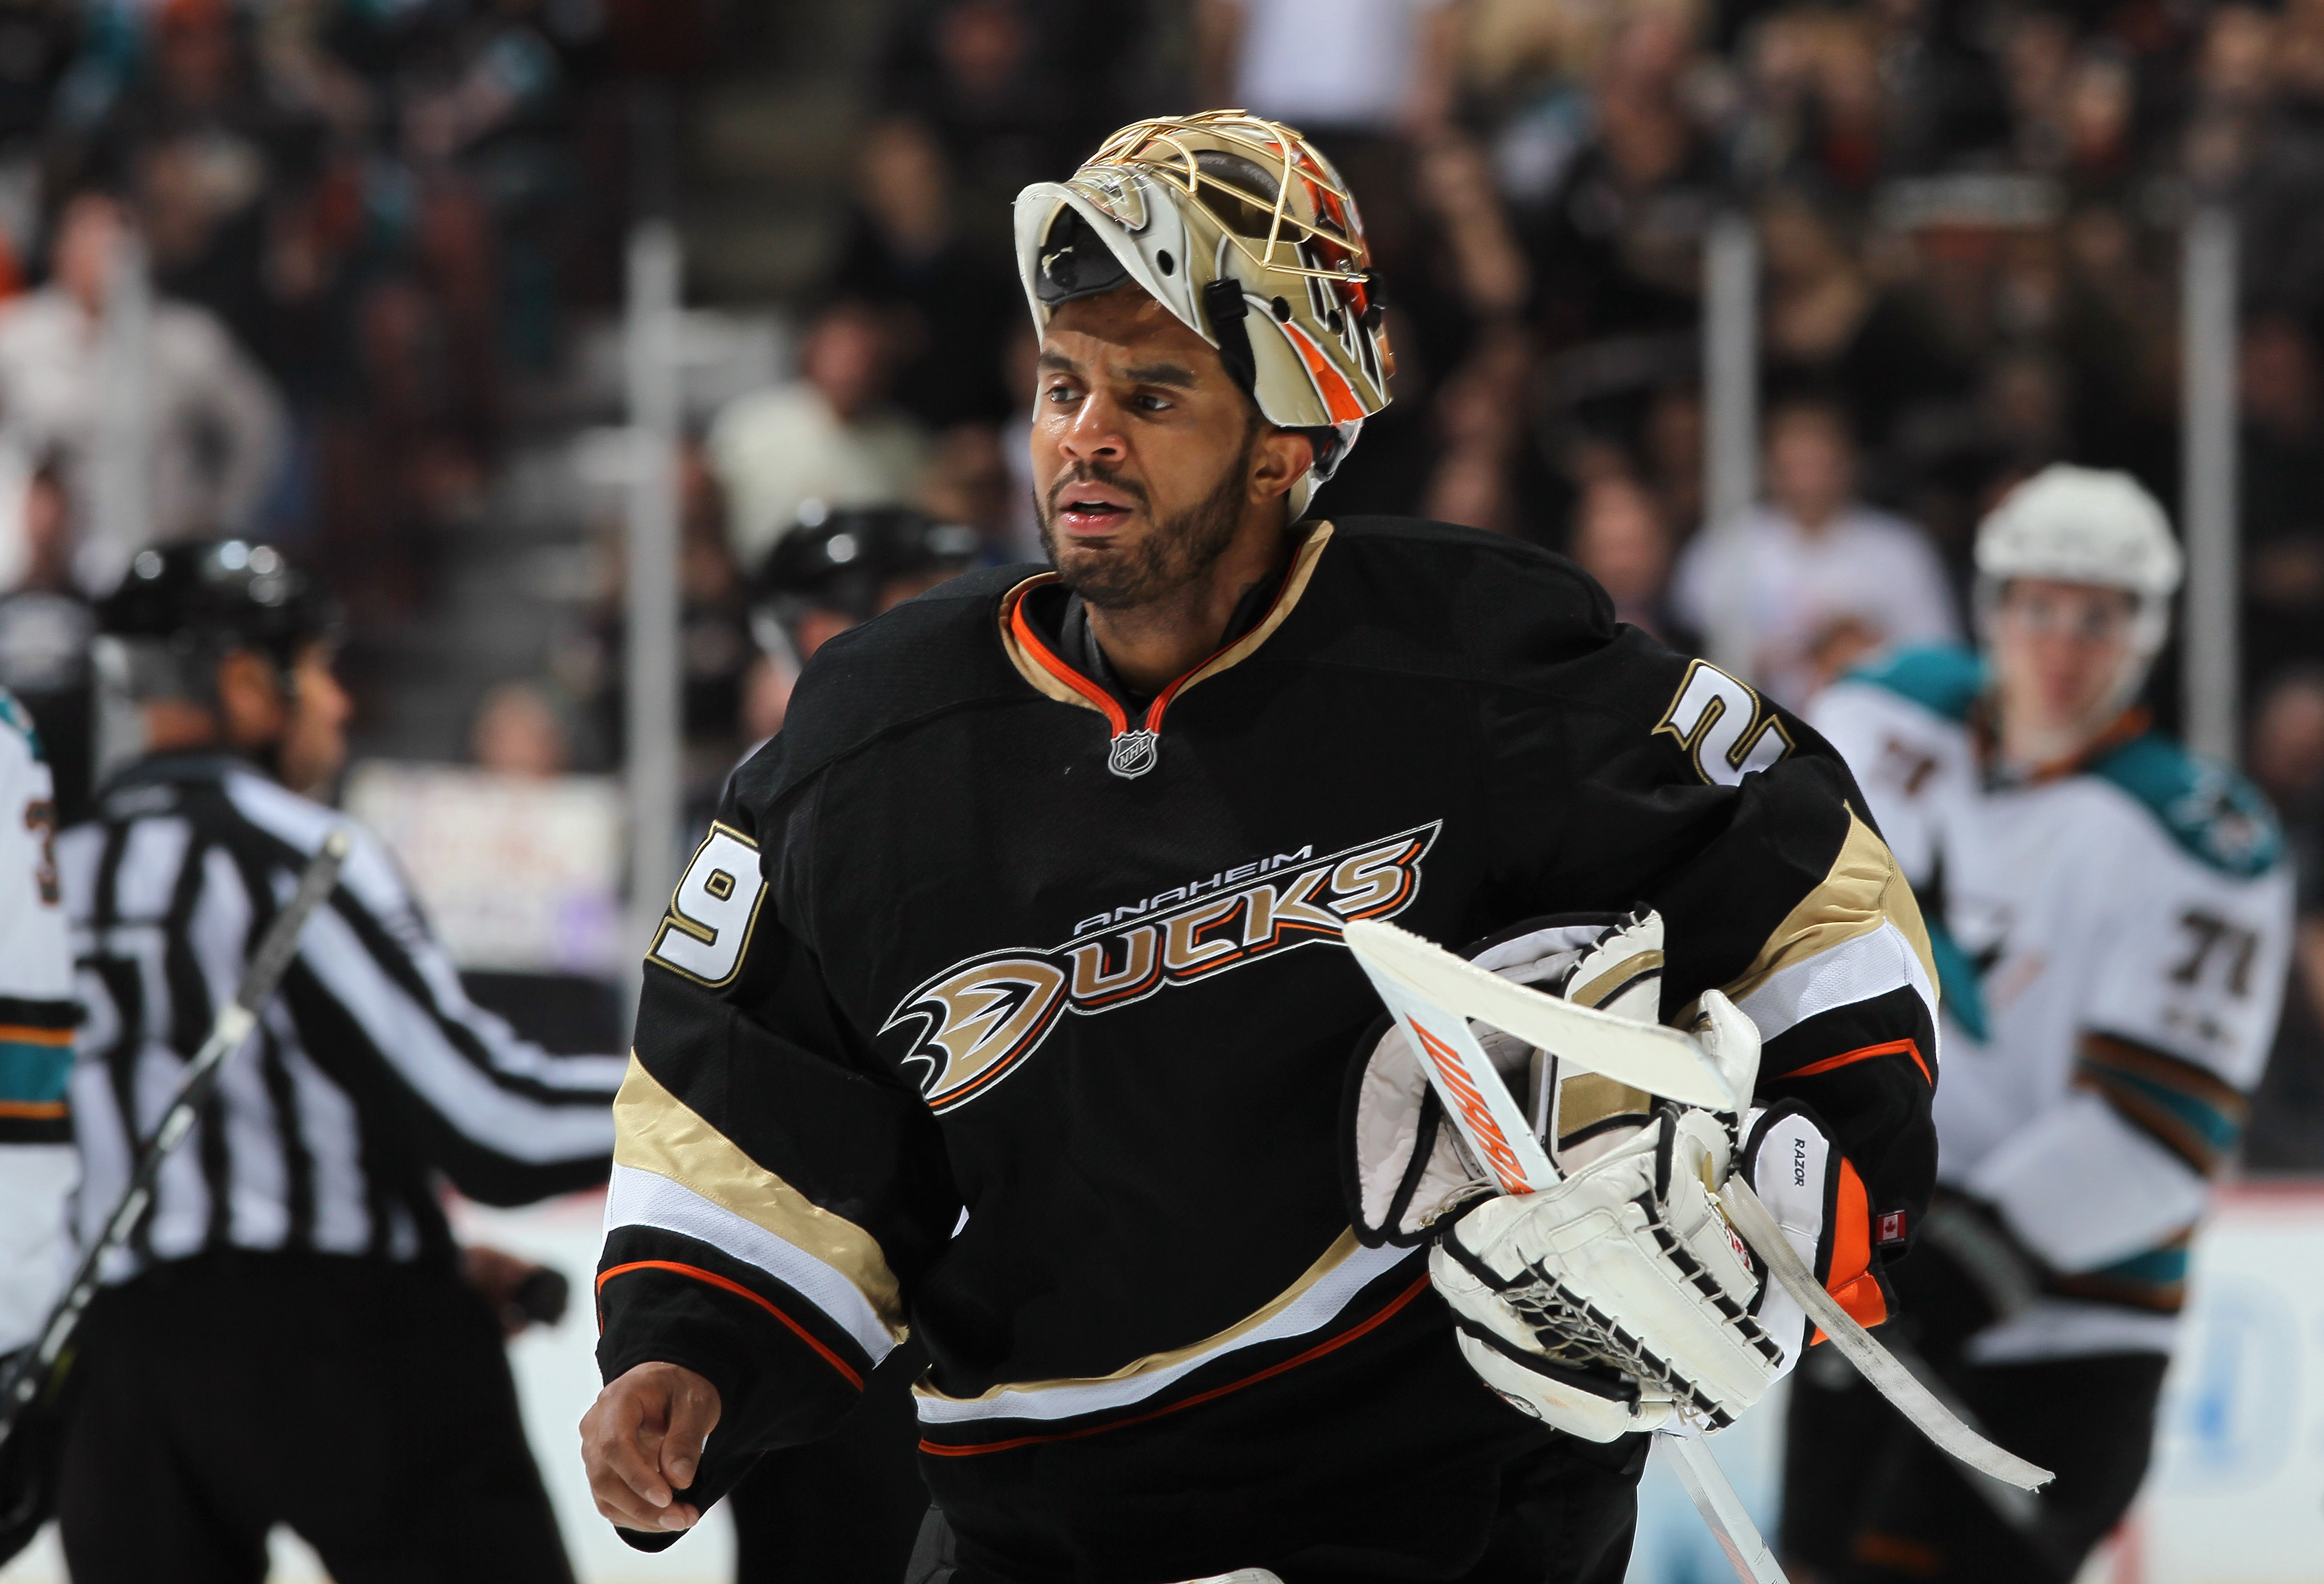 ANAHEIM, CA - APRIL 06:  Goaltender Ray Emery #29 of the Anaheim Ducks looks on against the San Jose Sharks at Honda Center on April 6, 2011 in Anaheim, California.  (Photo by Jeff Gross/Getty Images)